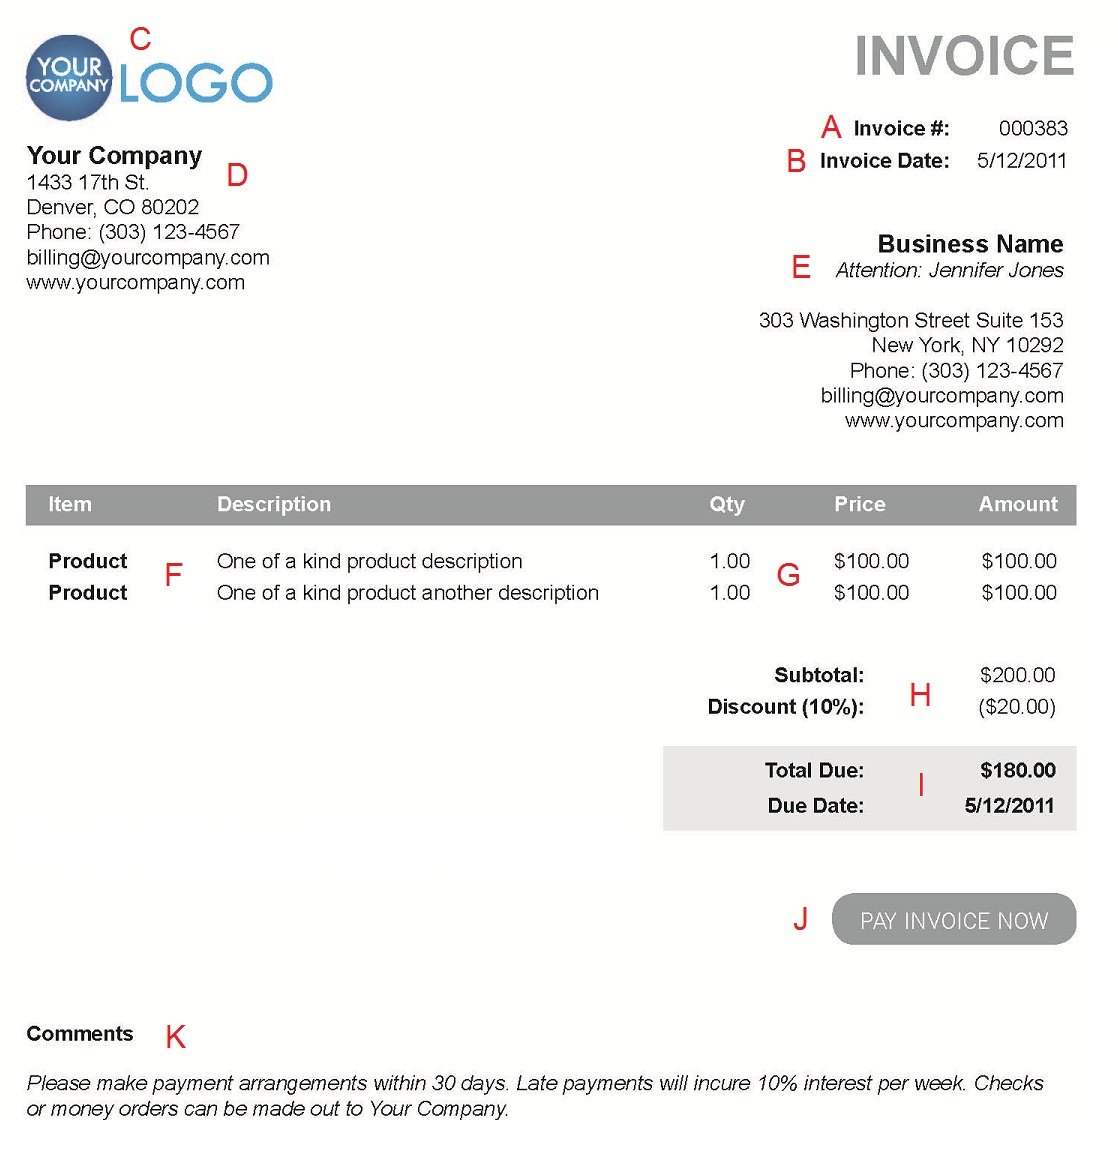 Usdgus  Pleasant The  Different Sections Of An Electronic Payment Invoice With Hot A  With Nice Gmail Read Receipts Also Receipt Apps In Addition Alien Registration Receipt Card And Non Profit Donation Receipt As Well As Certified Return Receipt Cost Additionally Receipt Printer For Ipad From Paysimplecom With Usdgus  Hot The  Different Sections Of An Electronic Payment Invoice With Nice A  And Pleasant Gmail Read Receipts Also Receipt Apps In Addition Alien Registration Receipt Card From Paysimplecom